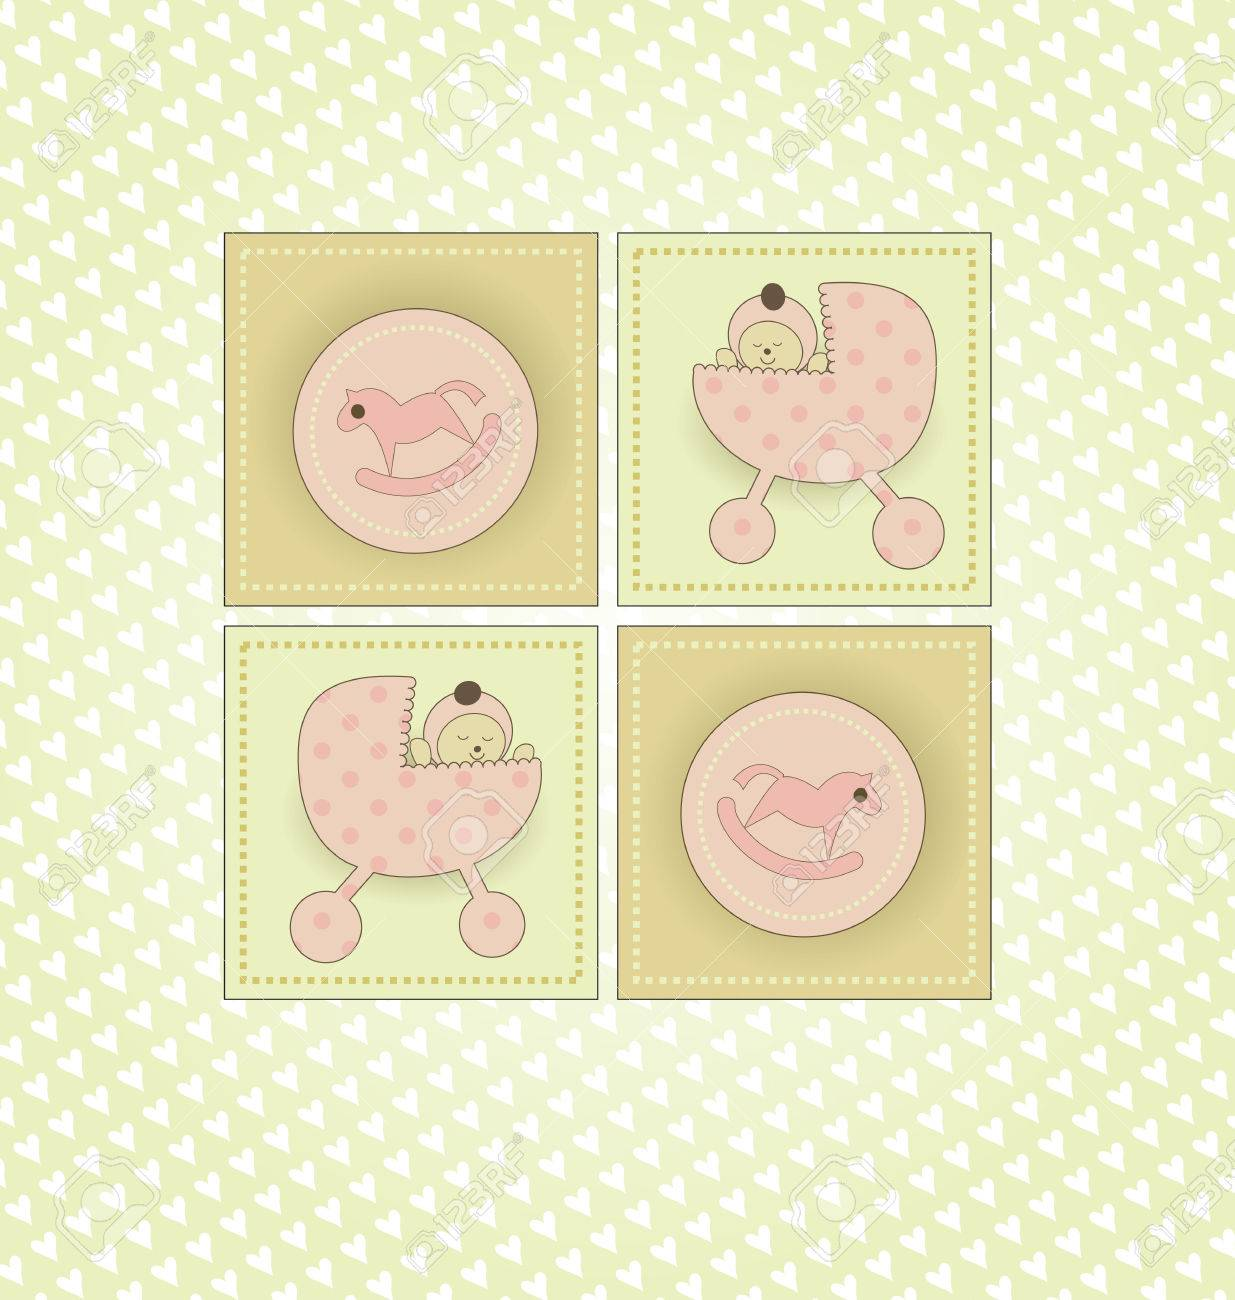 Sweet Welcome the New Baby Card Stock Vector - 8609884